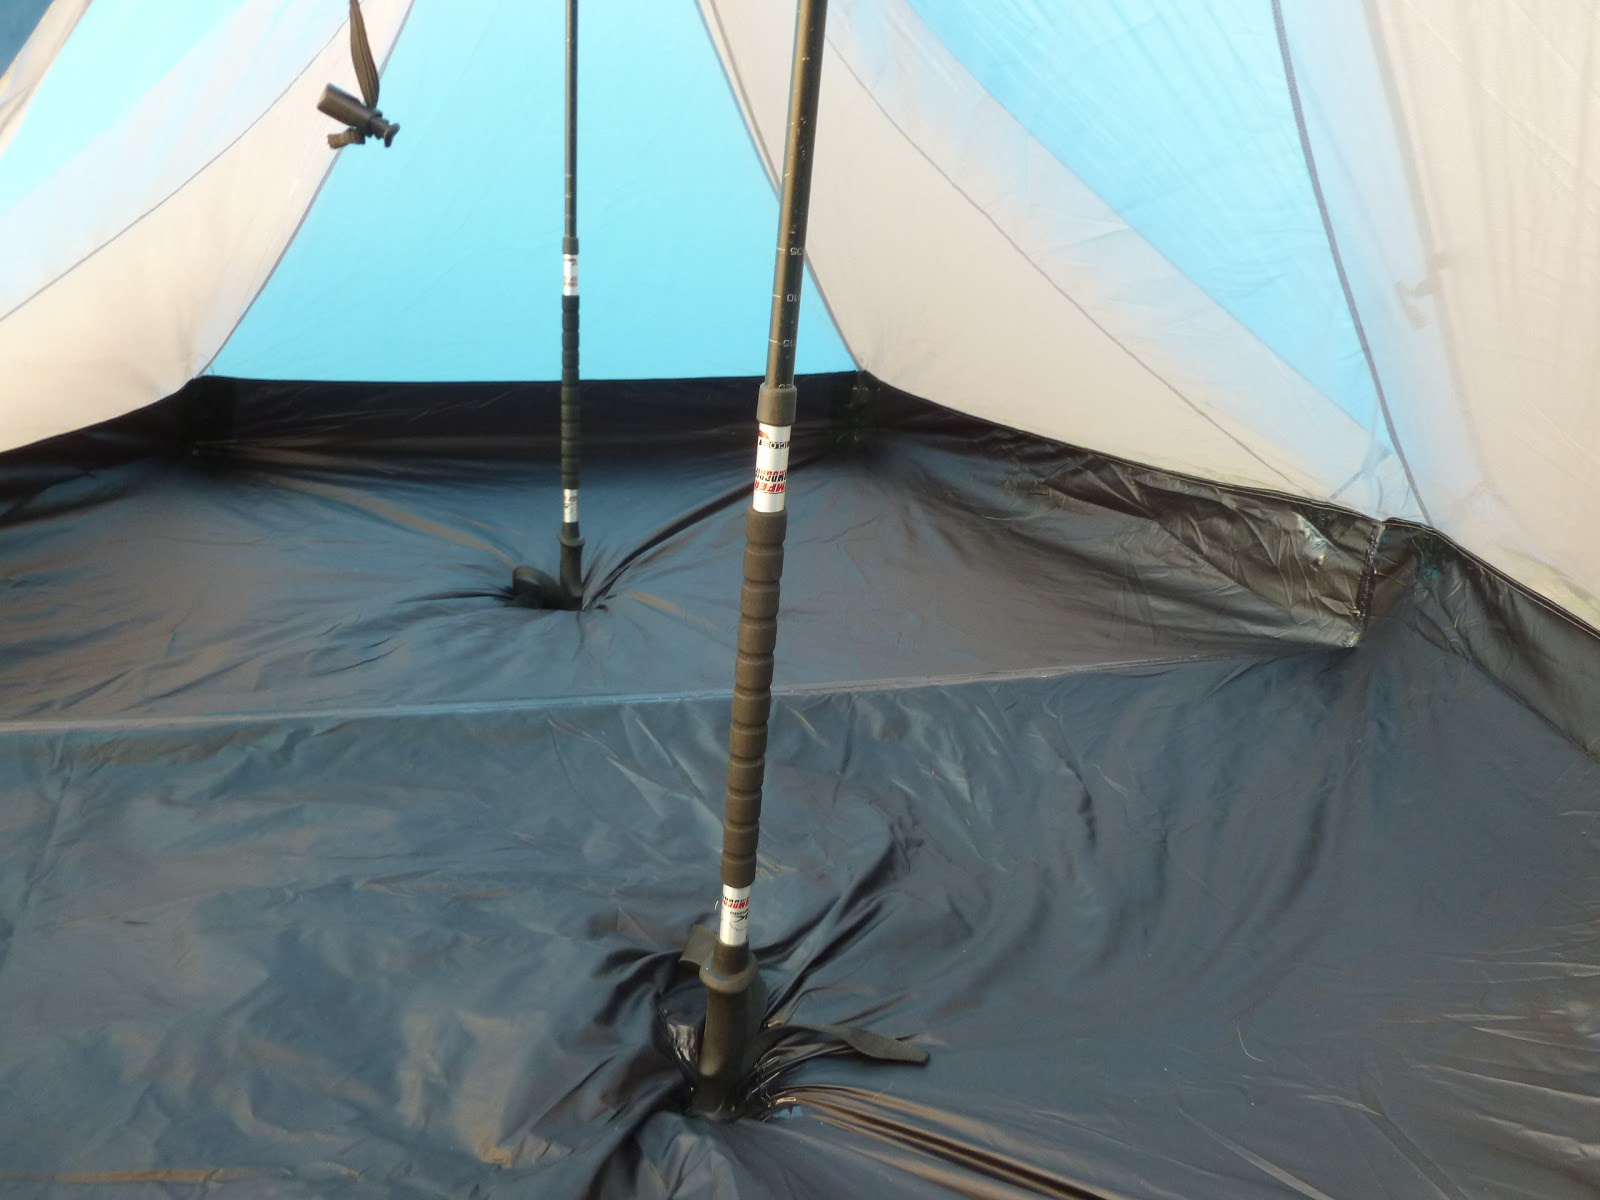 They provide greater stability and help take the load off knees during steep descents. Also using poles engages the arms and shoulders for a better workout ... & An American Explorer: Gear talk: Our new tent